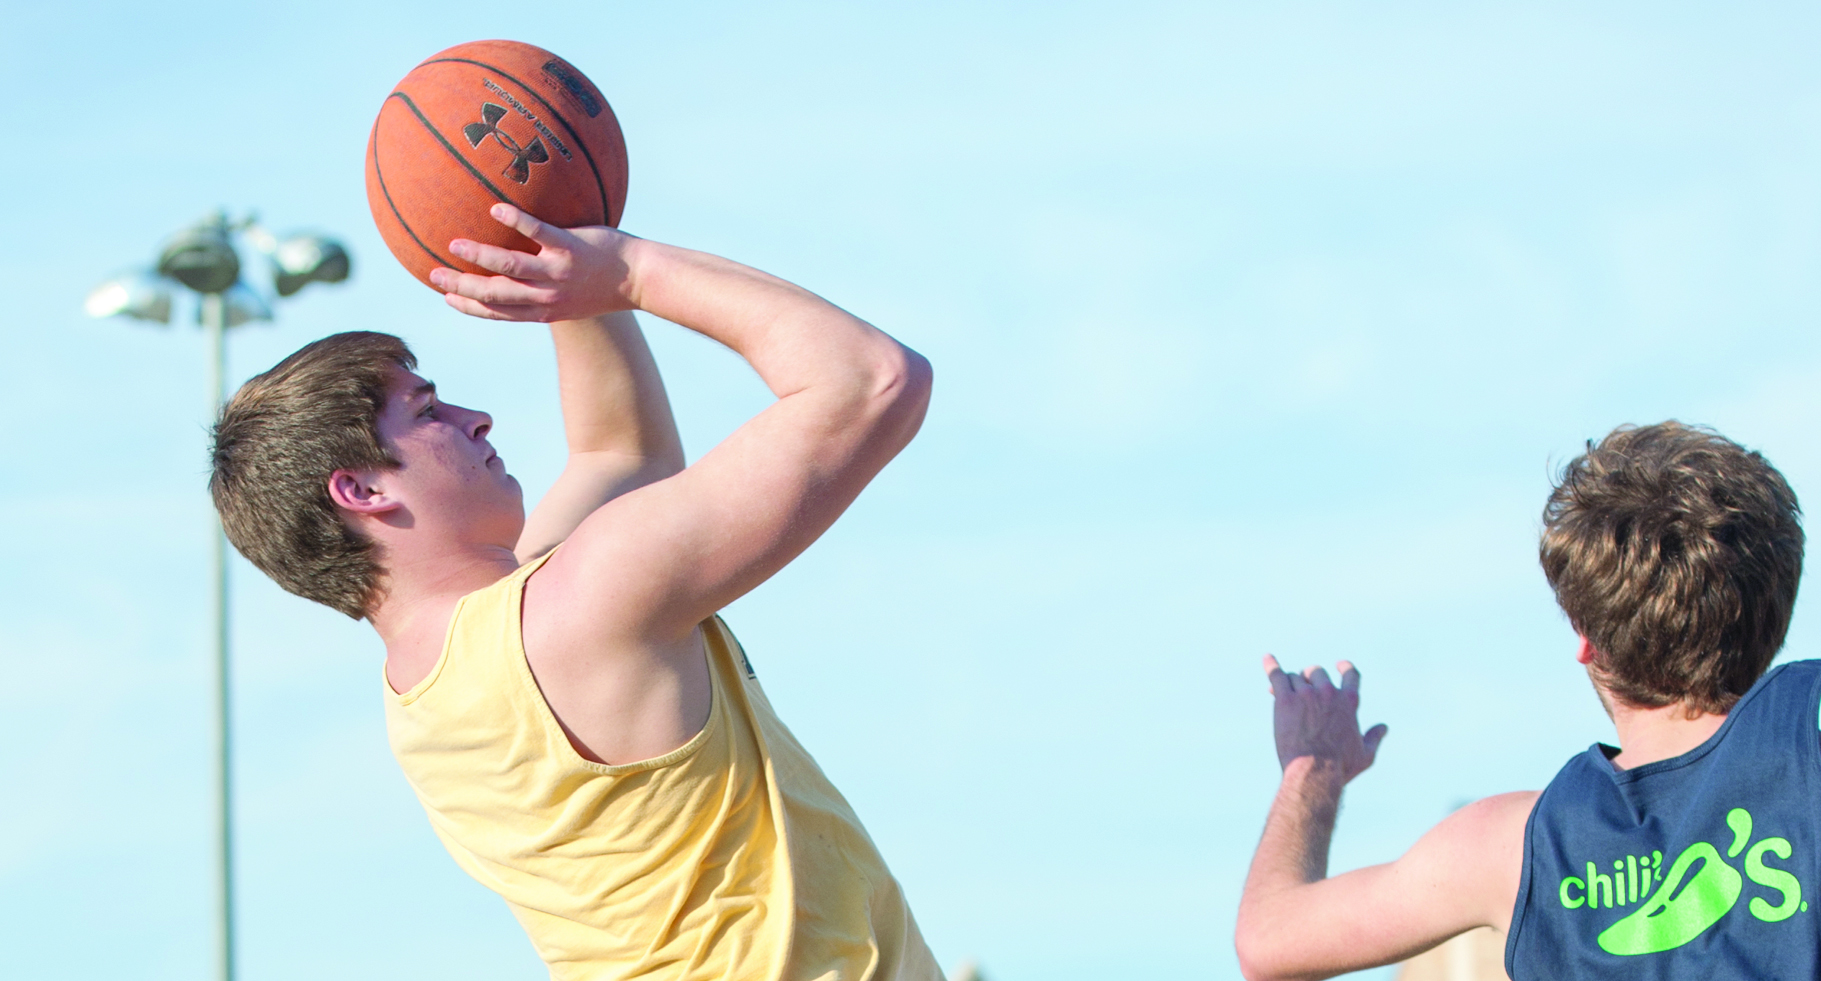 Bookstore Basketball tournament encourages competition ...